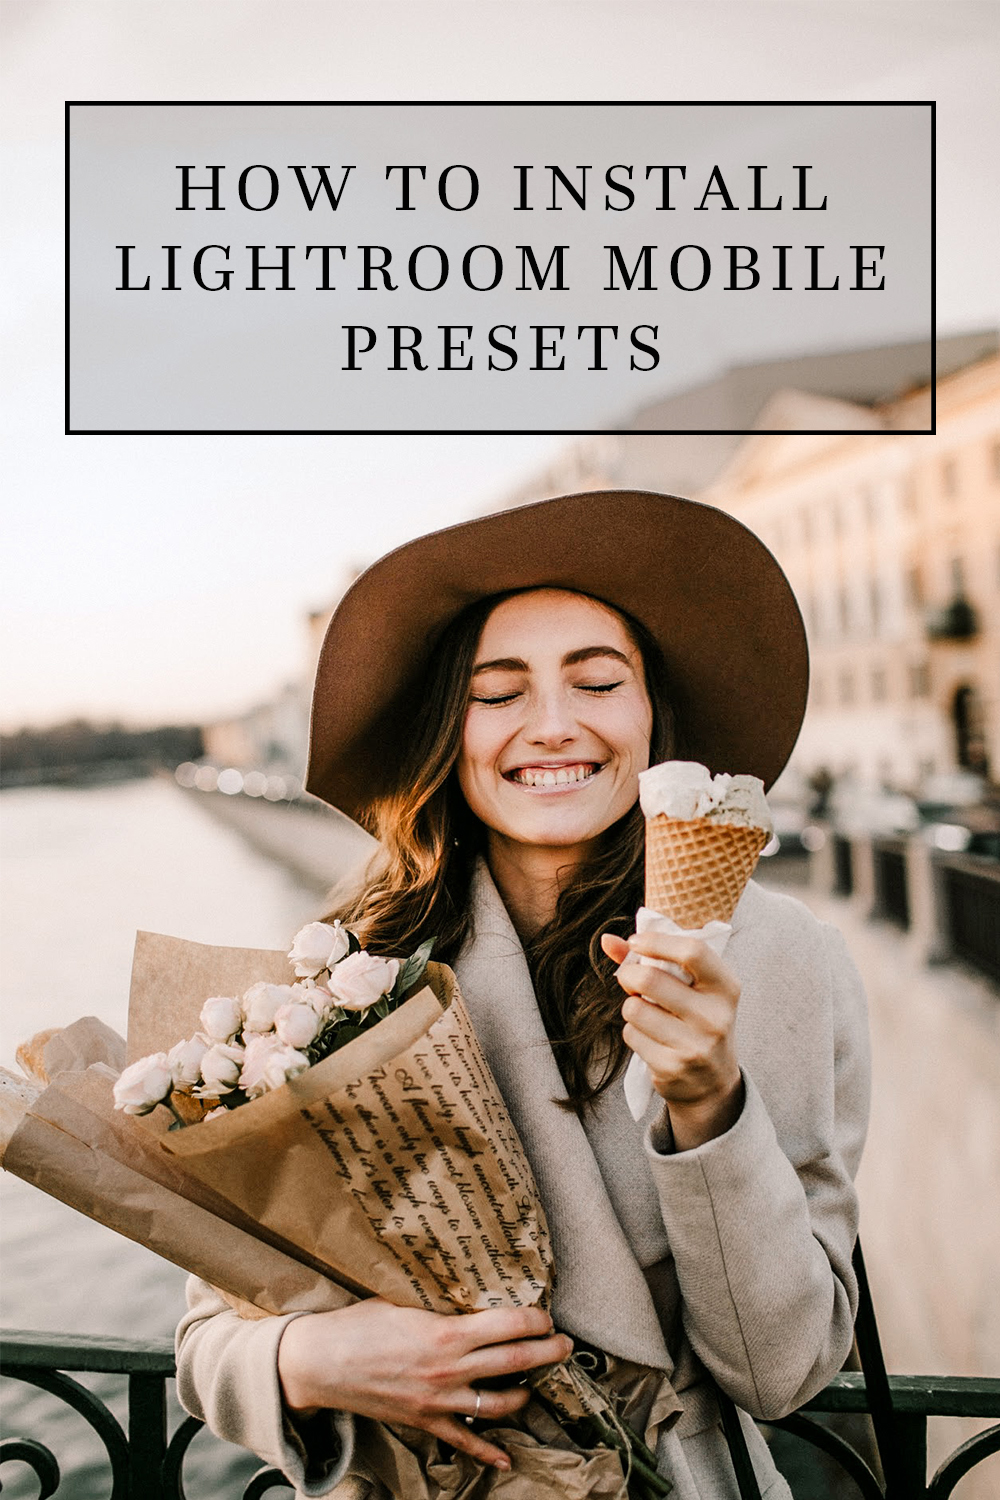 How-to-Install-Lightroom-Mobile-Presets